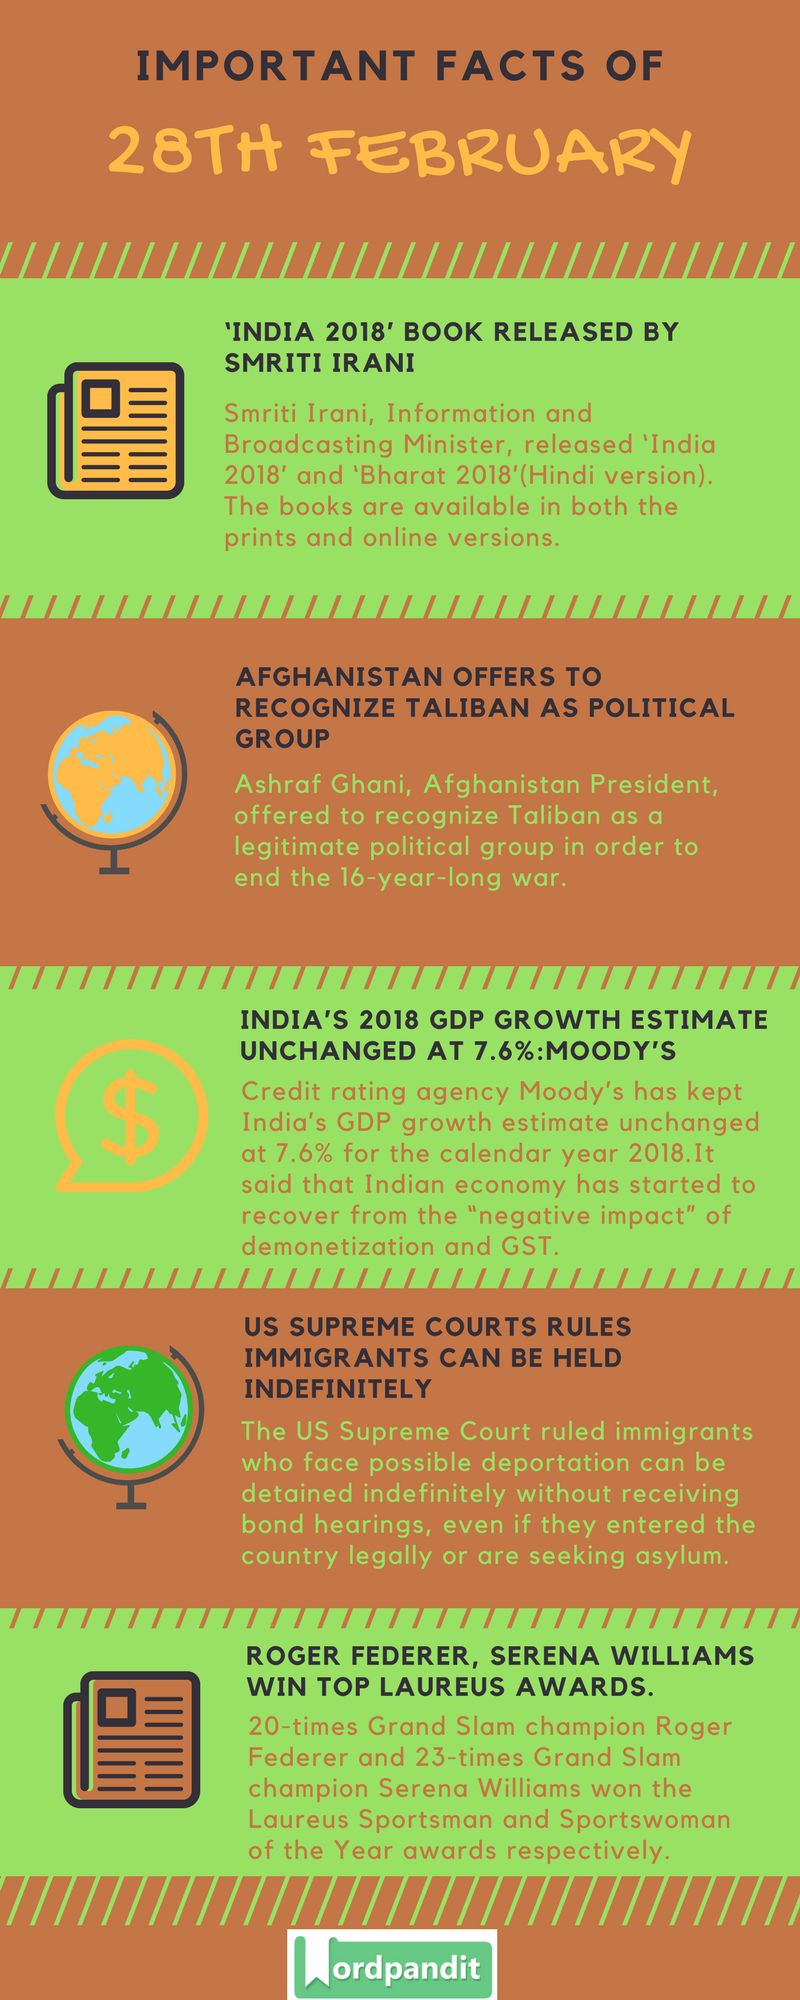 Daily Current Affairs 28 February 2018 Current Affairs Quiz February 28 2018 Current Affairs Infographic